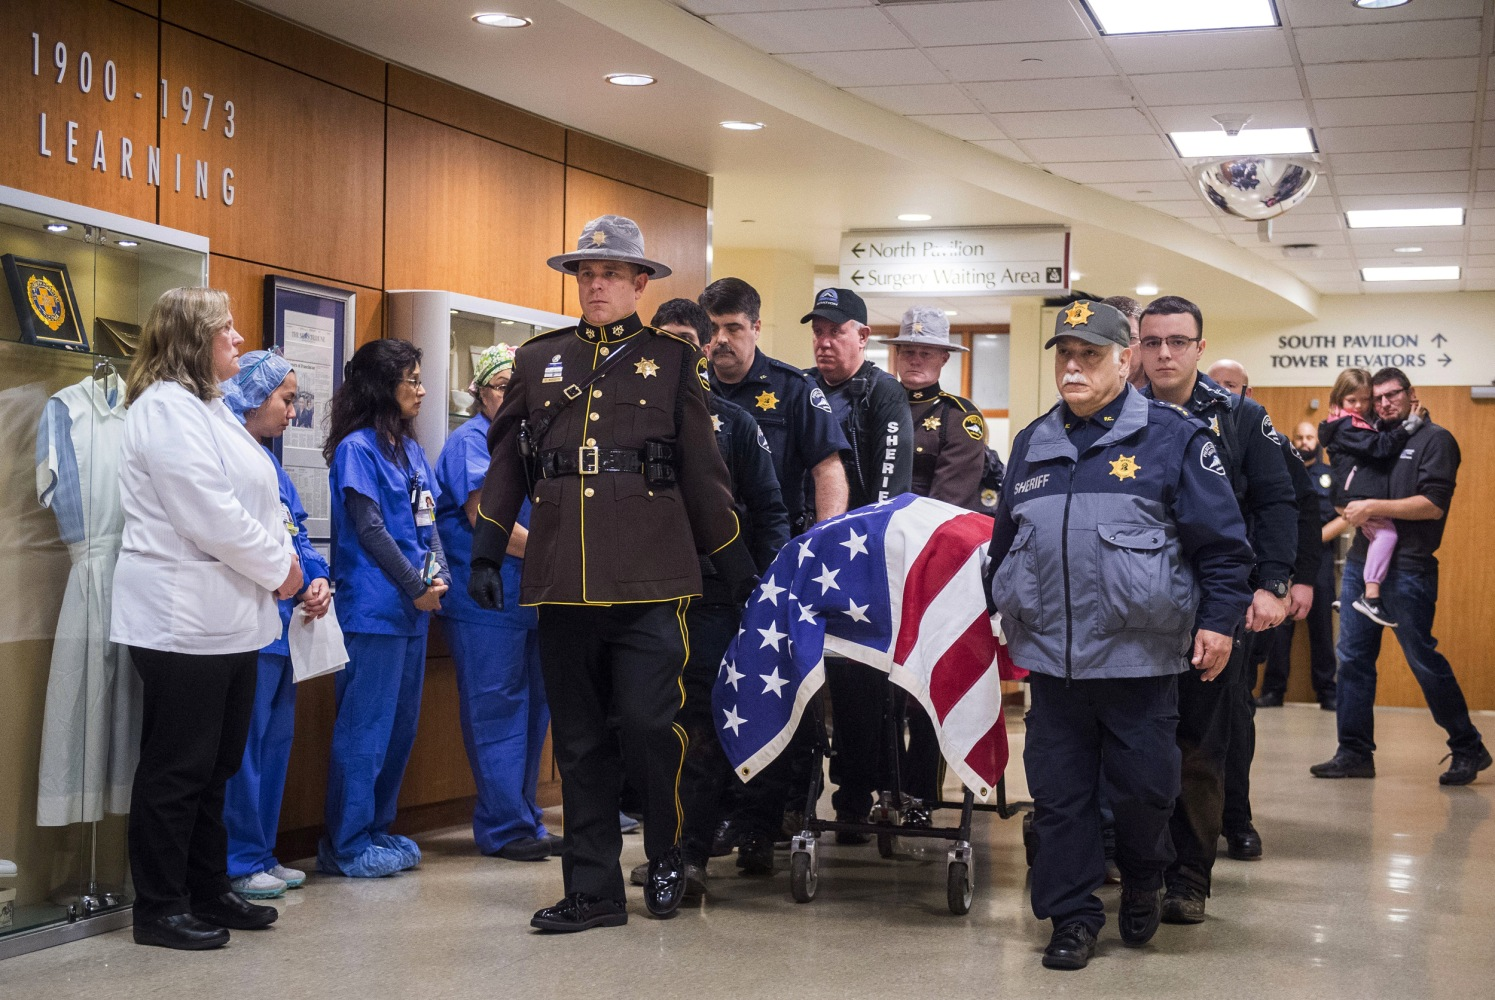 Image Officers and medical staff take part in a procession for officer Daniel McCartney of Yelm at St. Joseph Medical Center in Tacoma Washington on Jan. 8 2018